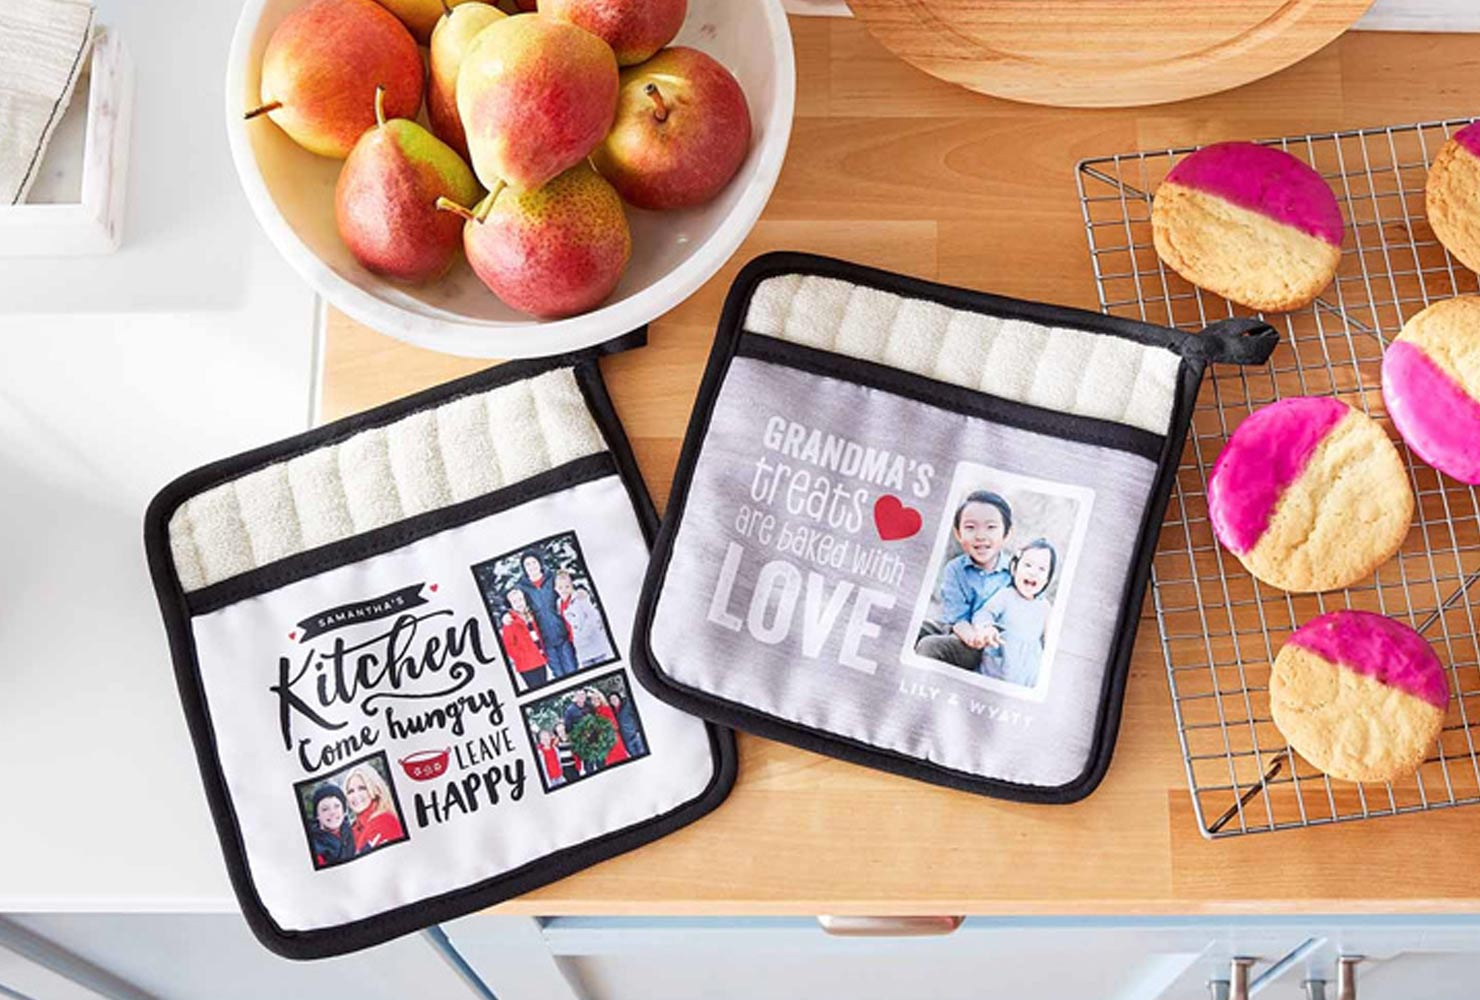 christmas gift ideas for friends personalized potholder.